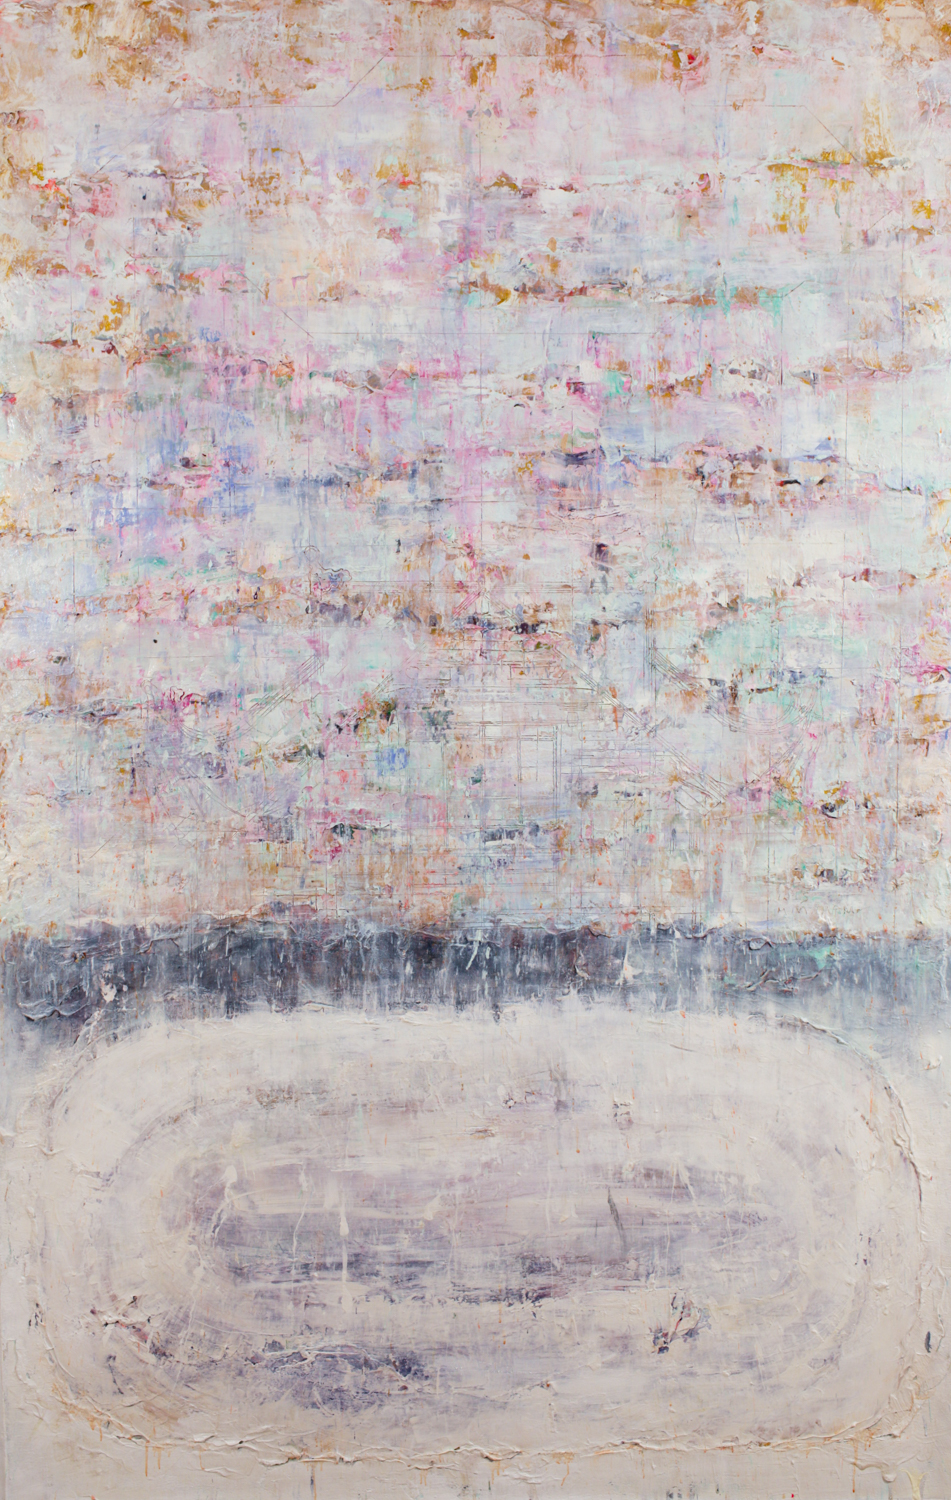 Fall Time At Lake, 2015, Mixed Media on Canvas, 185 x 120 cm, HA Manh Thang